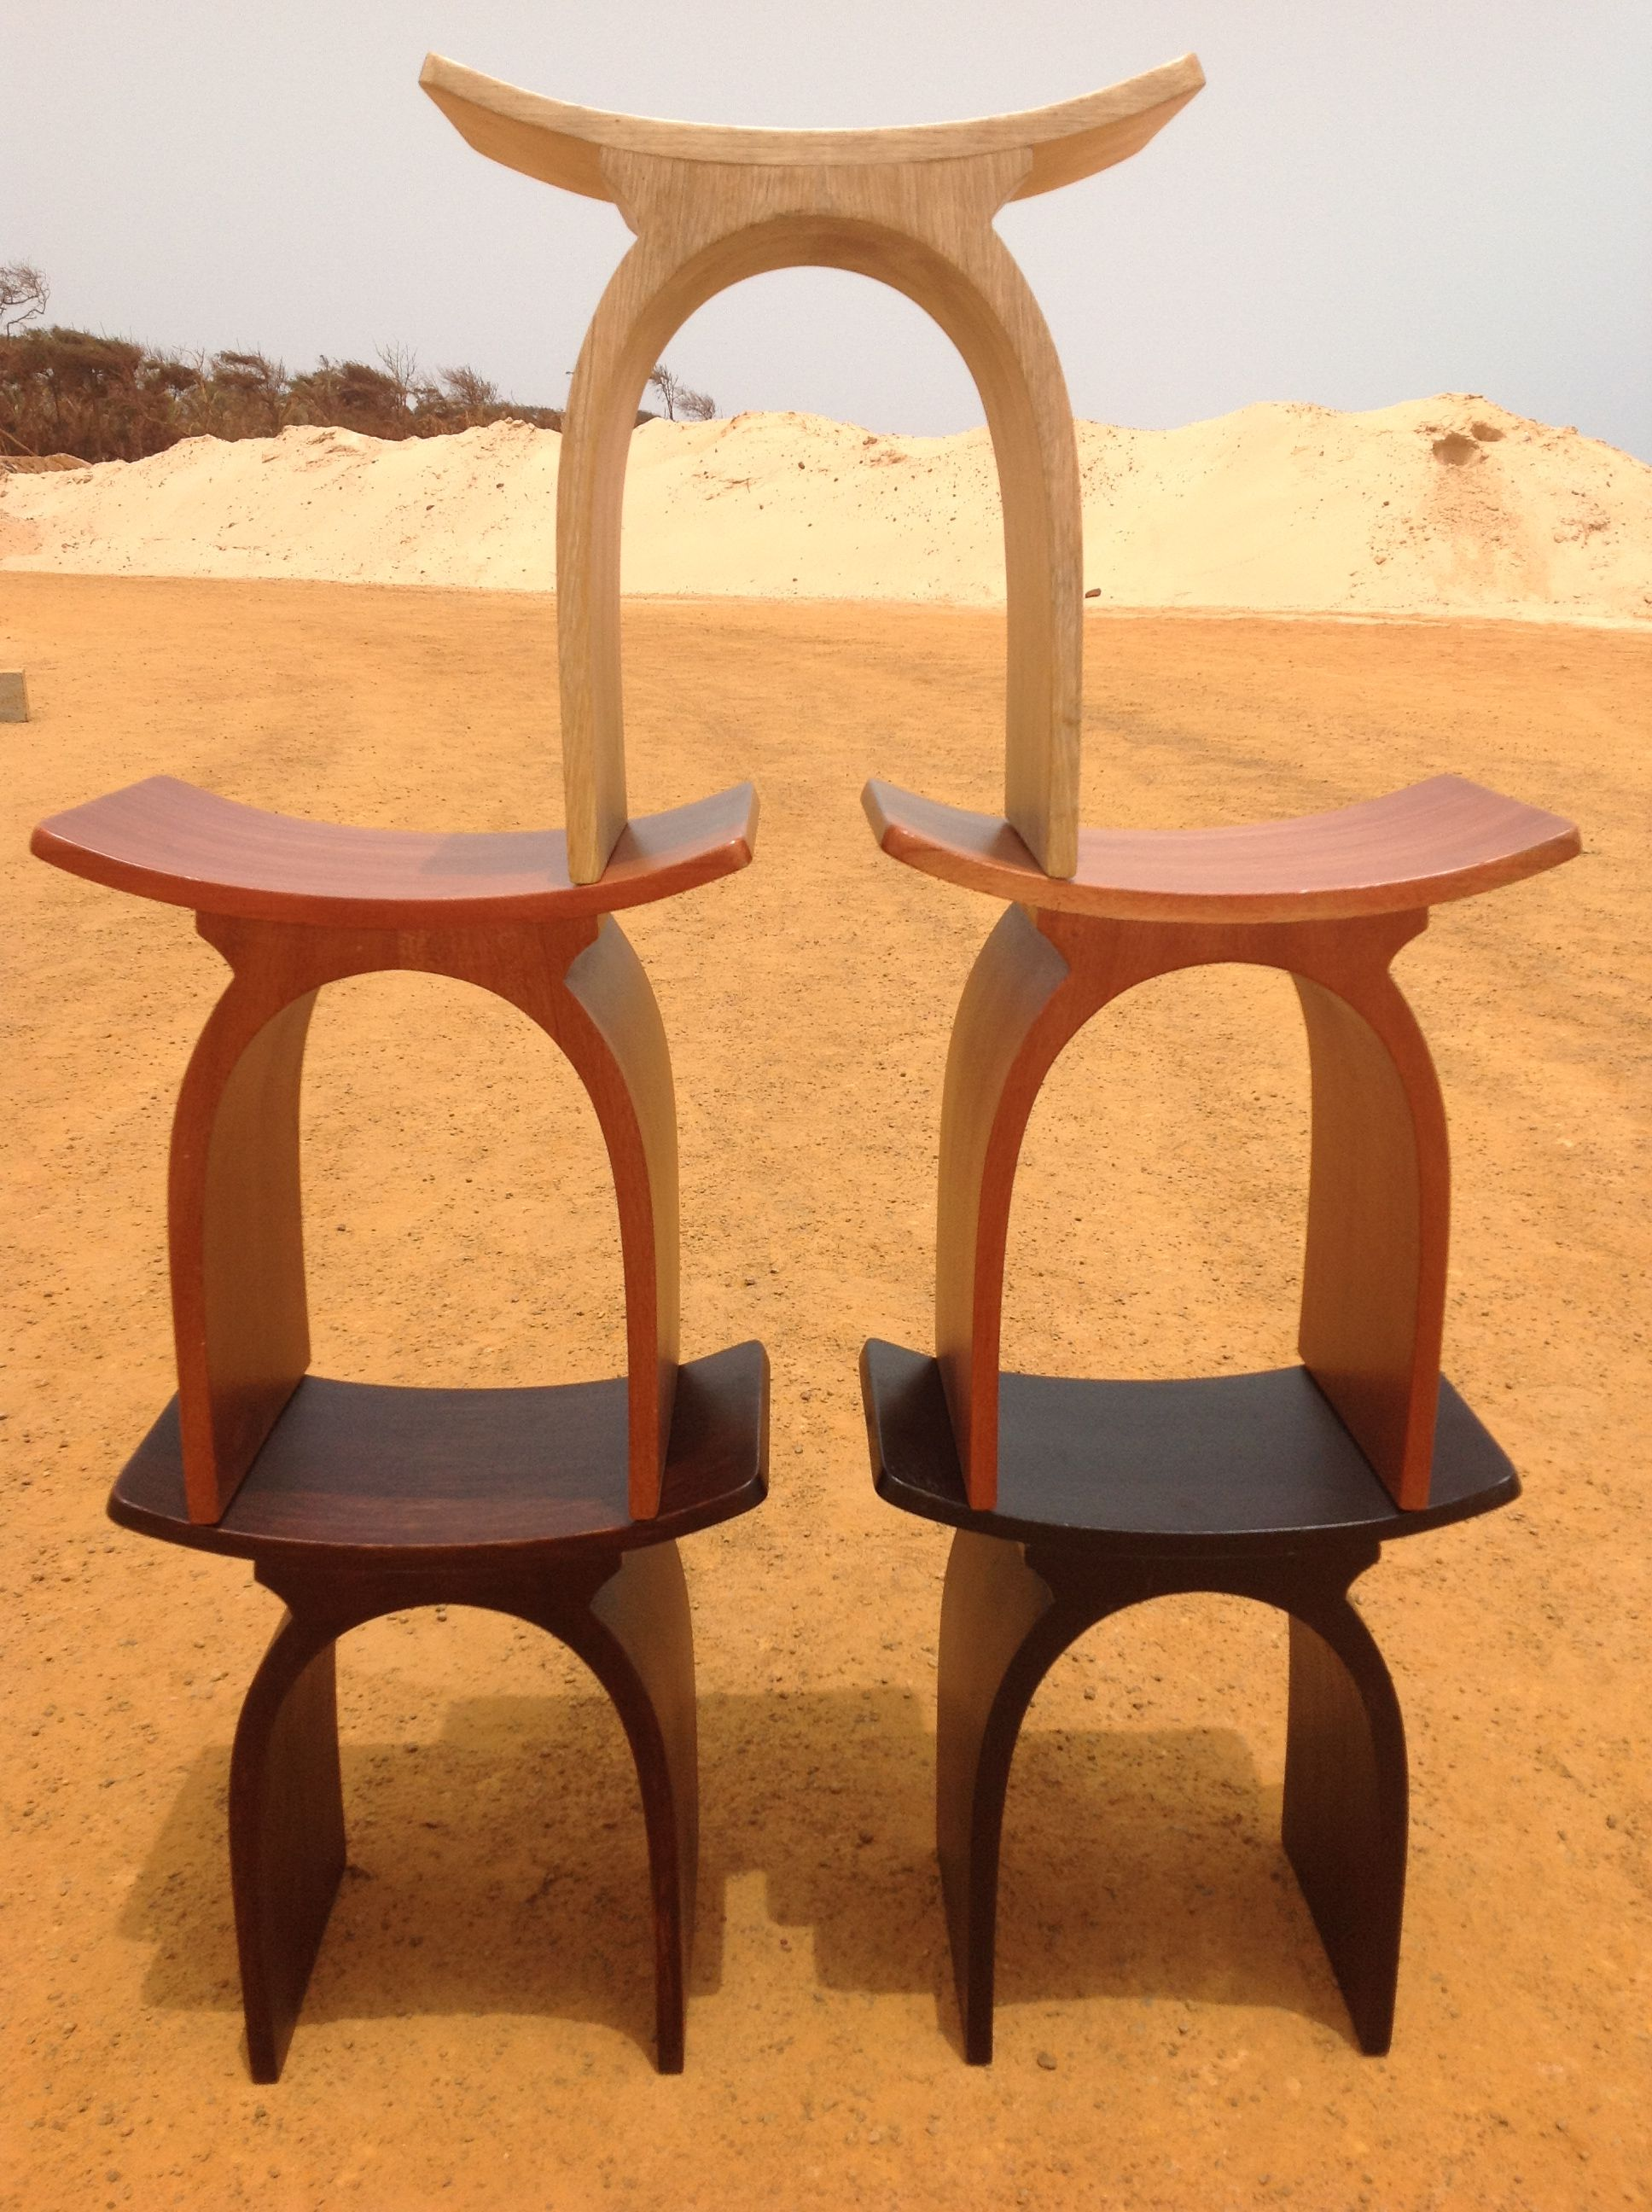 contemporary african furniture. Contemporary African Stool - TOGOU Furniture I